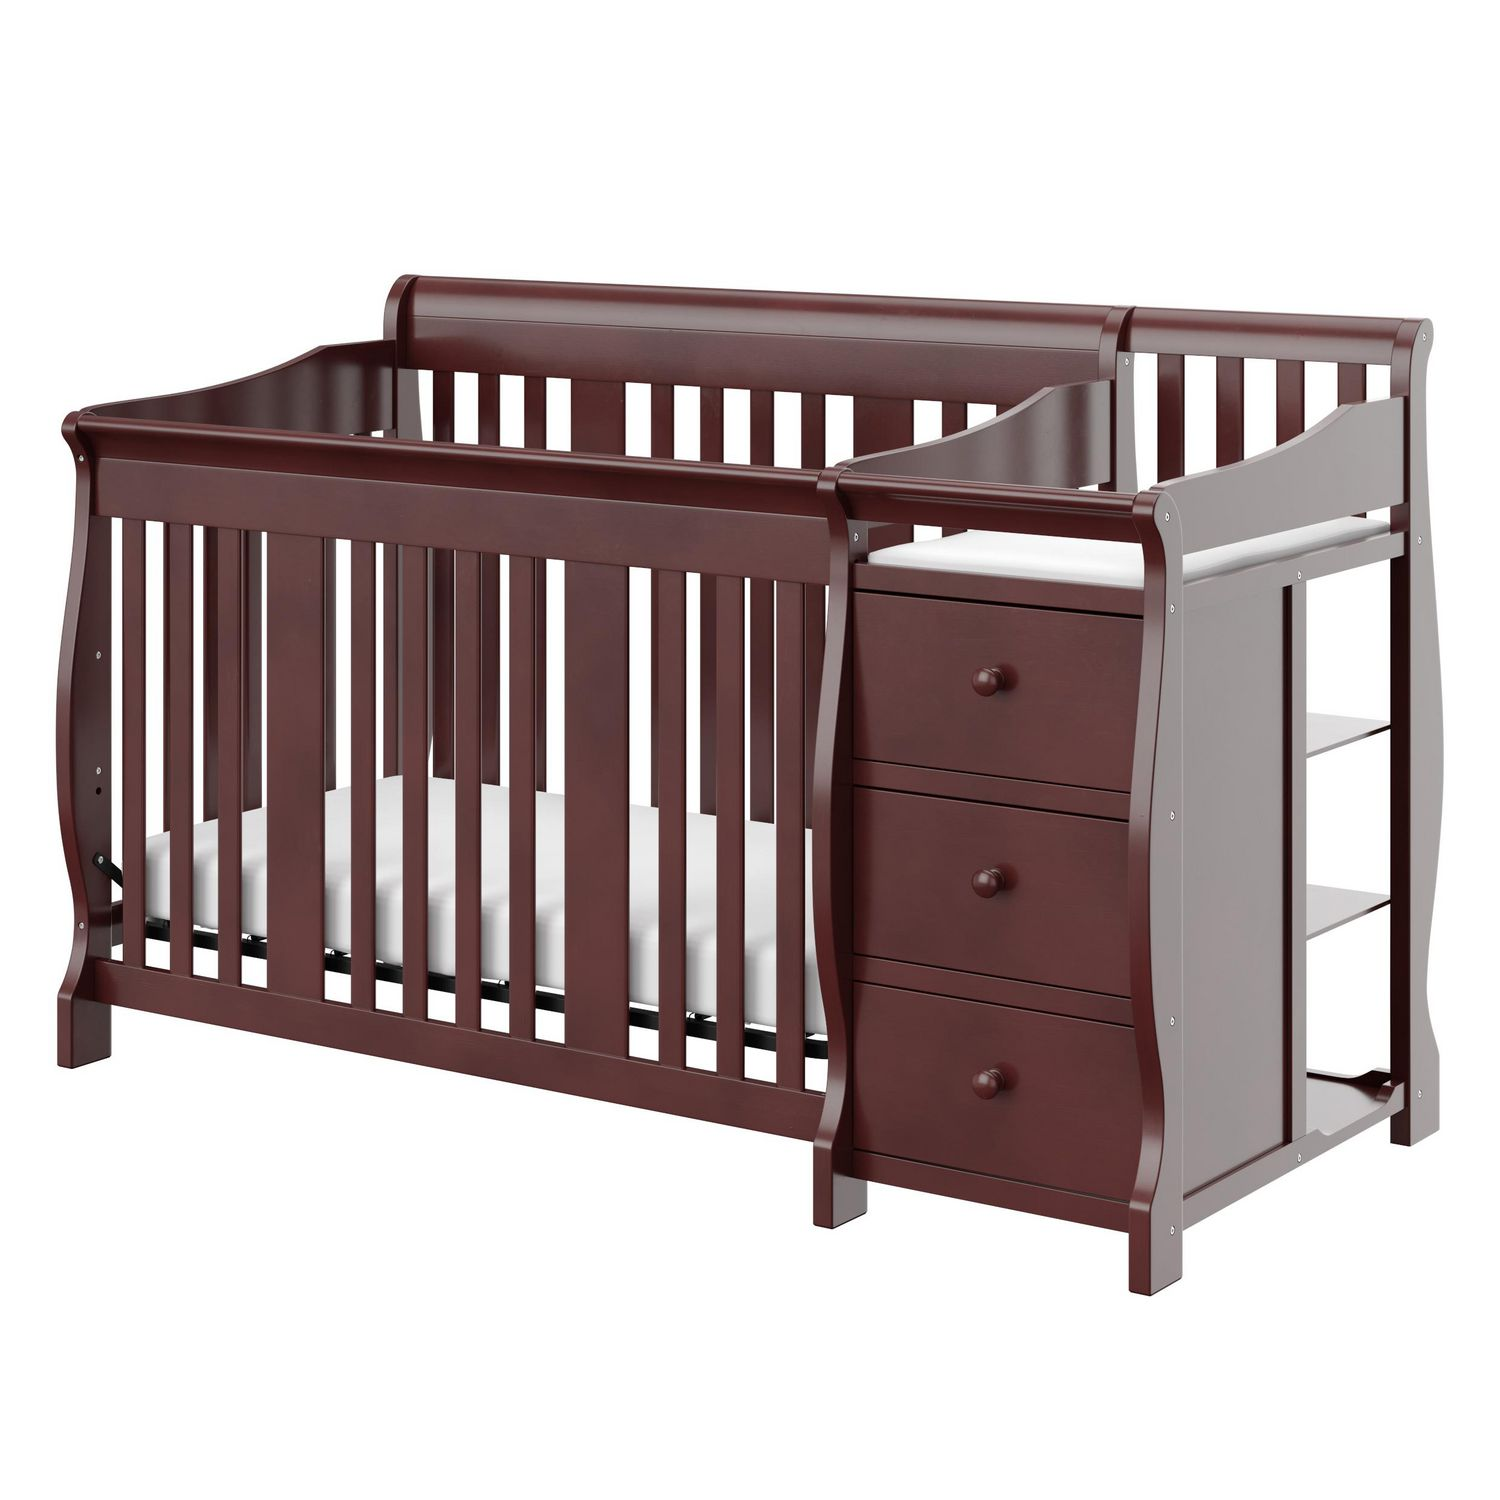 Crib for sale kelowna - Storkcraft Portofino 4 In 1 Convertible Crib And Changer